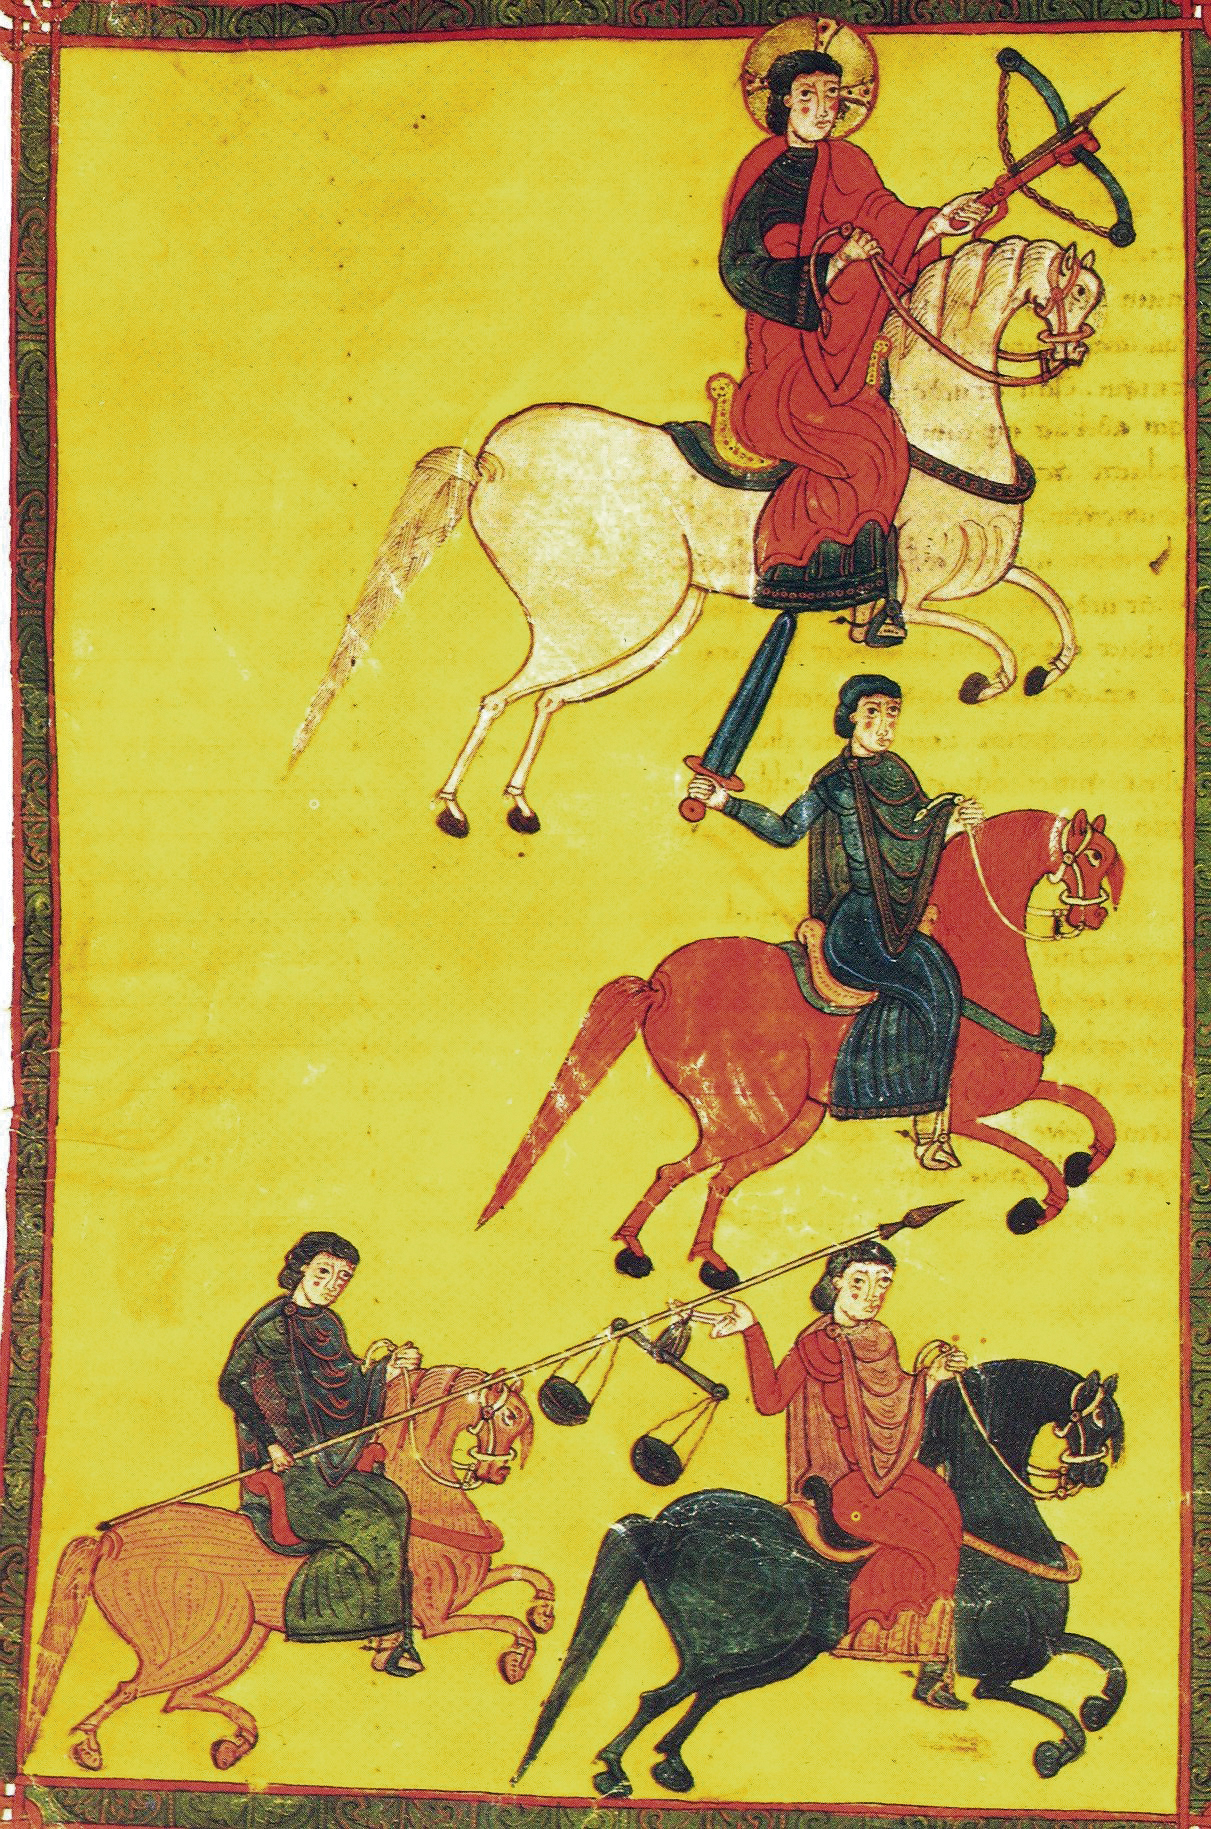 Four Horsemen of the Apocalypse, illustration of Burgo de Osma, 1086, Martinus, Castille-et-León, Spain